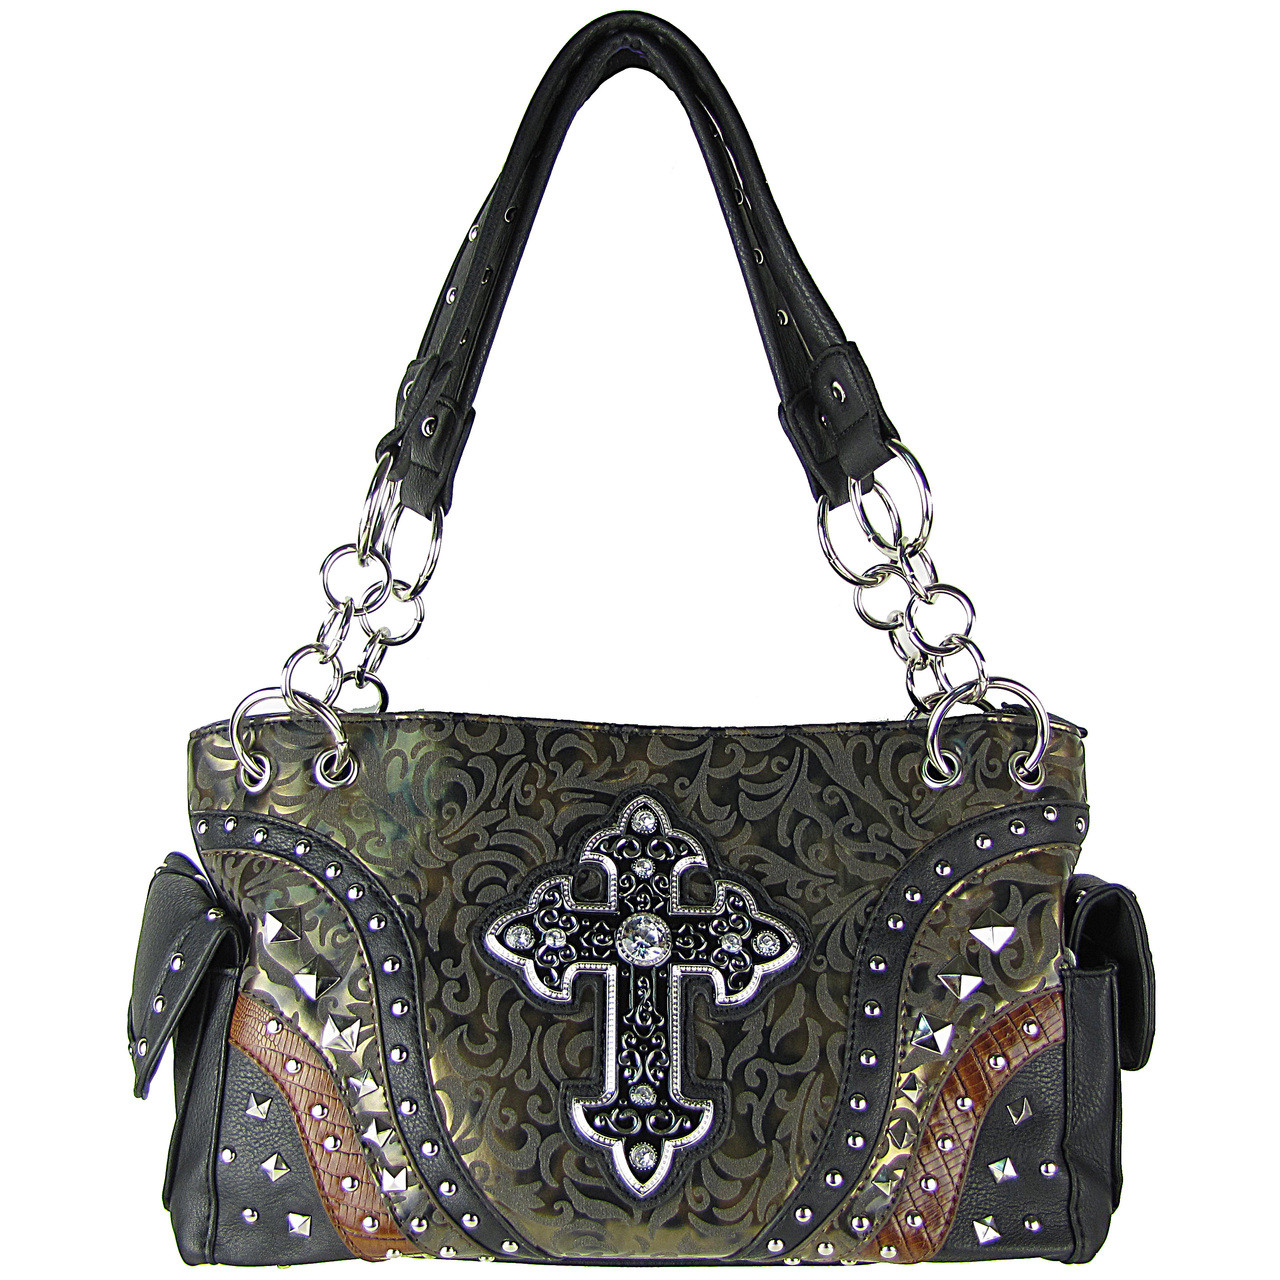 BLACK METALLIC PAISLEY STUDDED RHINESTONE CROSS LOOK SHOULDER HANDBAG HB1-90LCRBLK